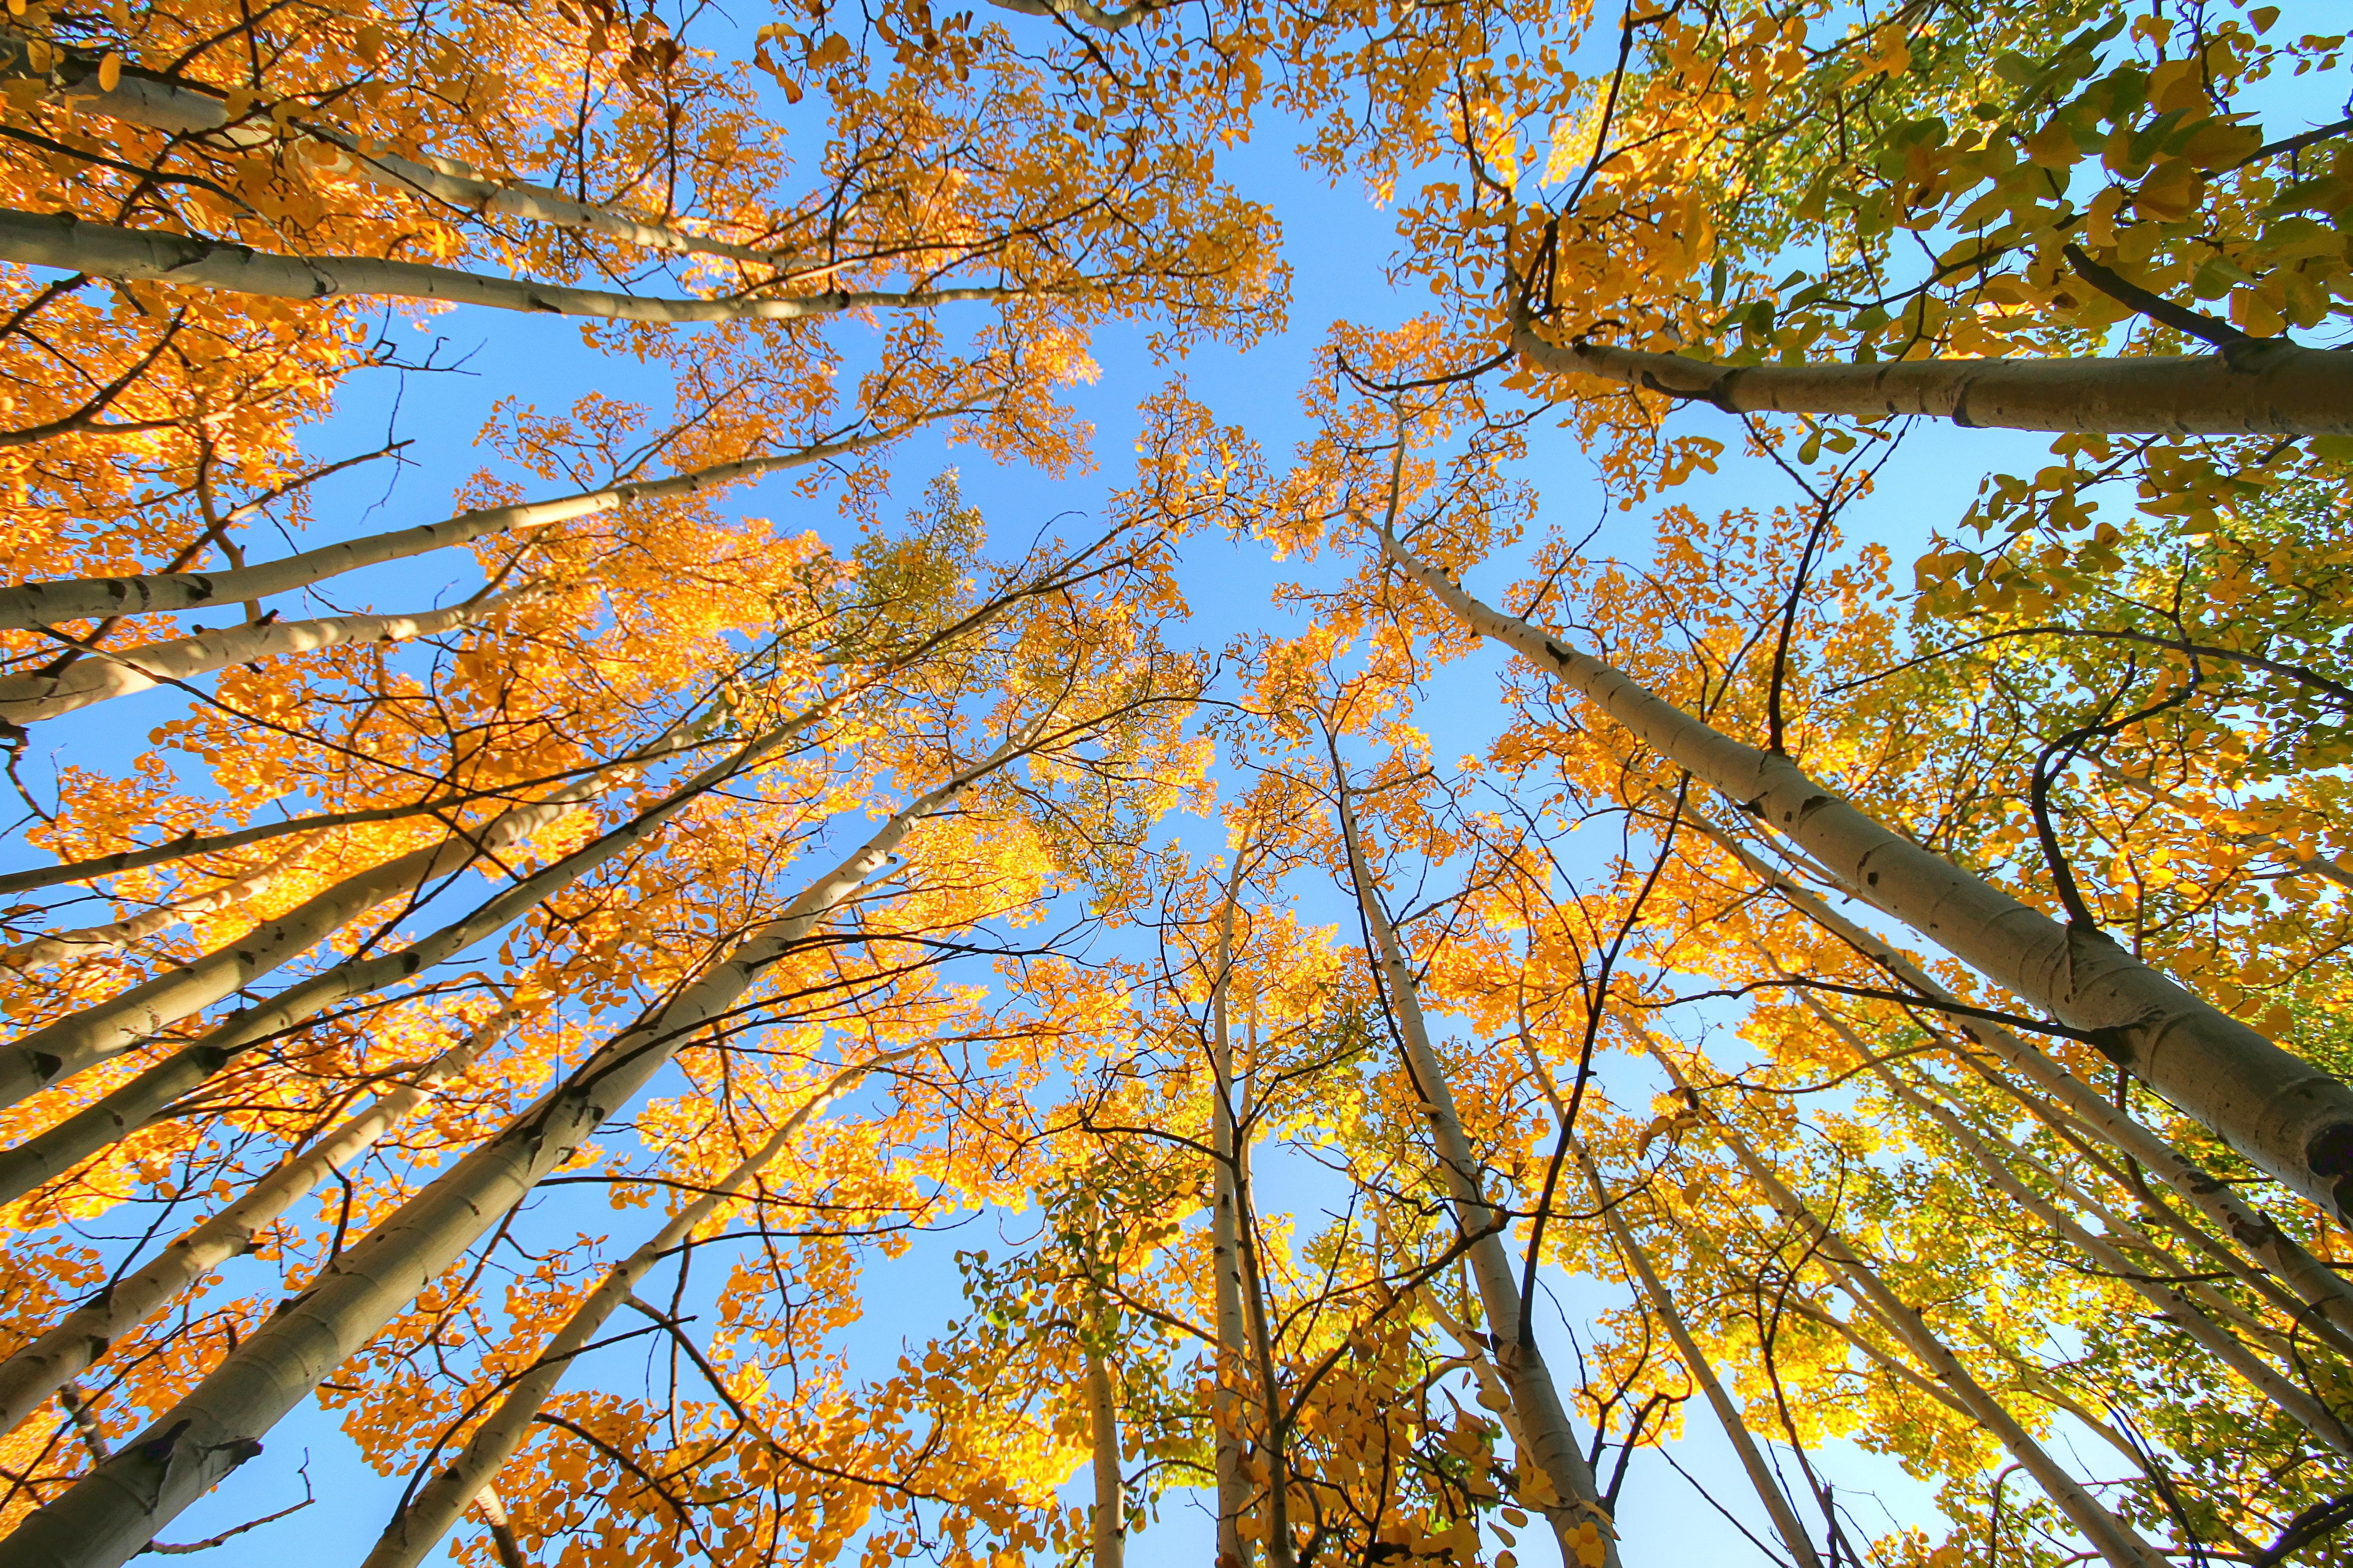 worm's eyeview of brown trees